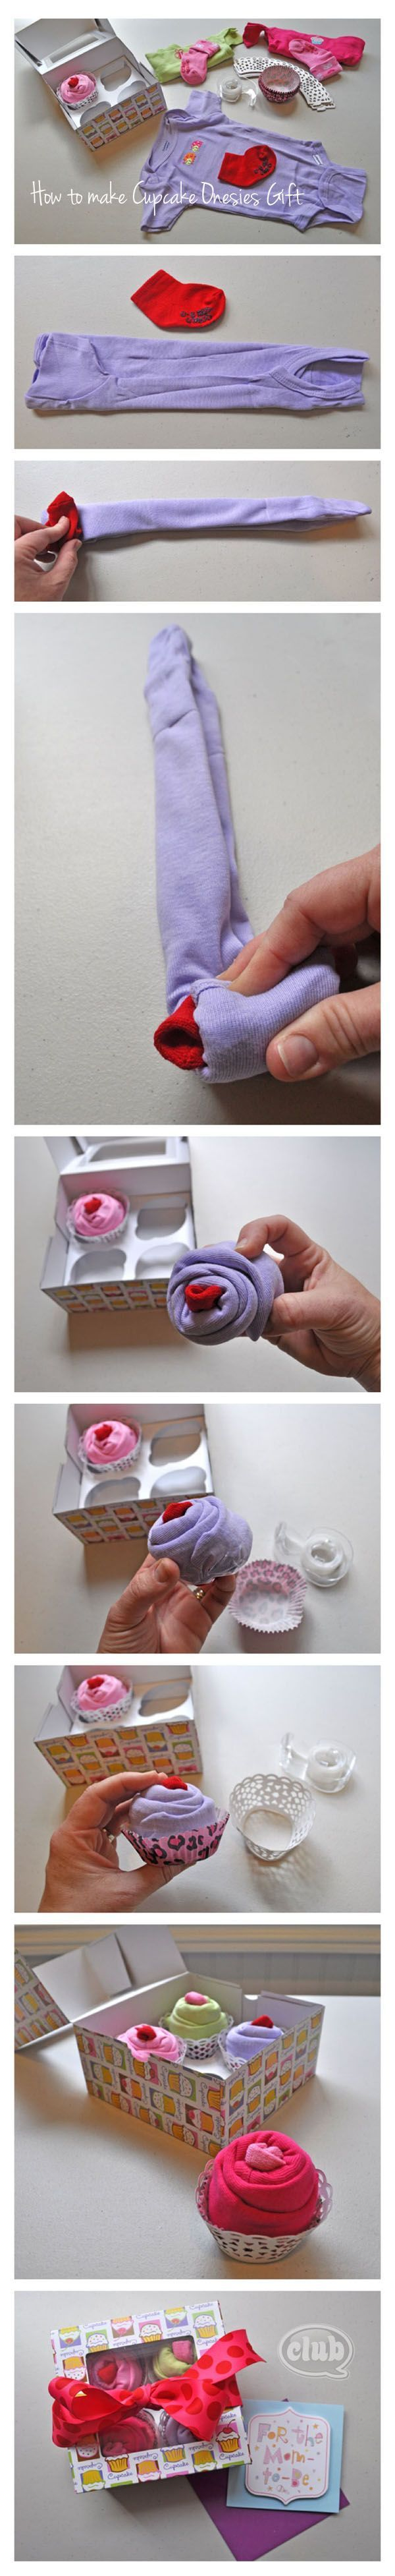 Great idea! Cupcake onesies baby gift - perfect homemade gift idea. so cute!